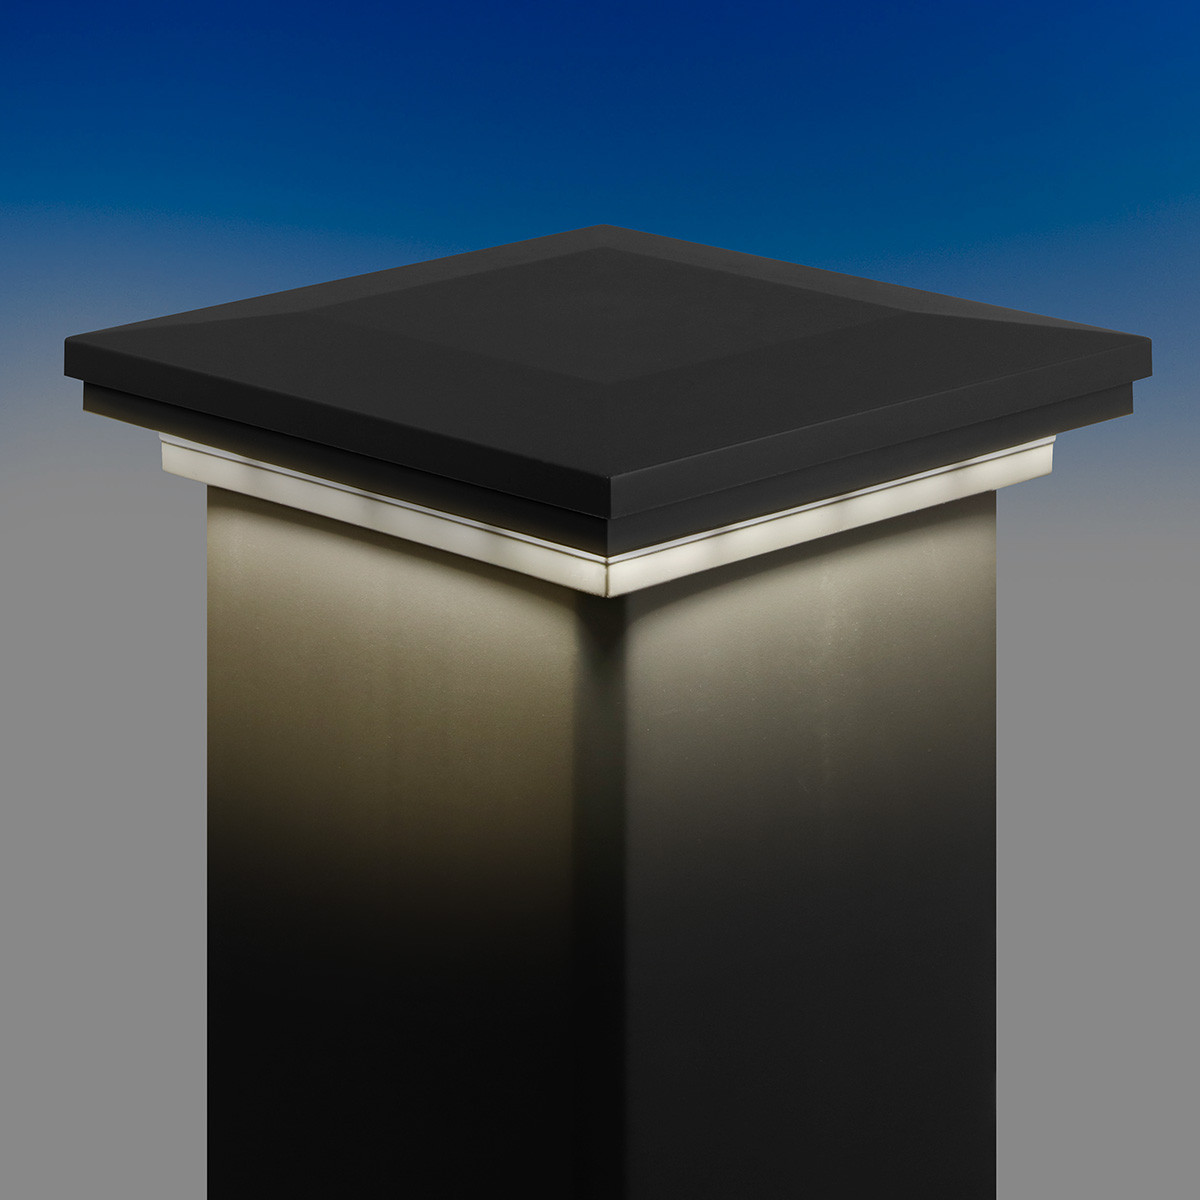 Ornamental Downward Low Voltage LED Post Cap Light by LMT Mercer - Cool (5k) Lit - Matte Black